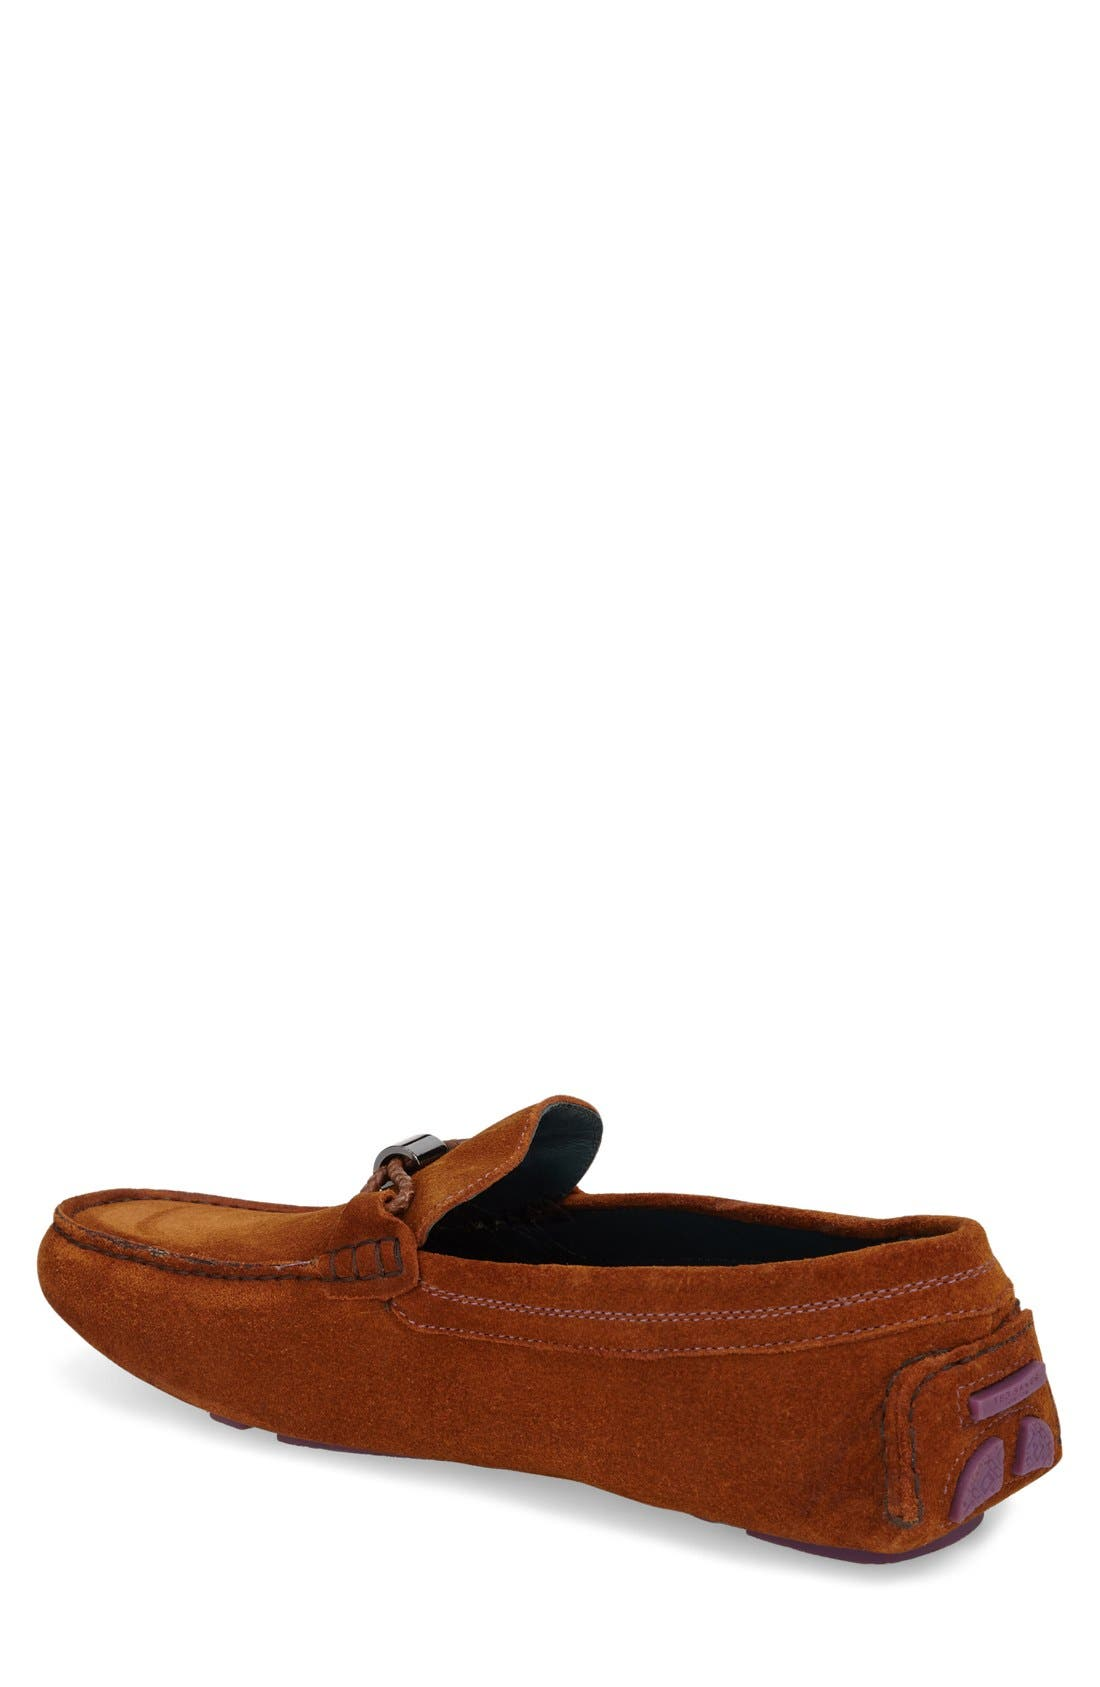 'Carlsun 2' Driving Shoe,                             Alternate thumbnail 2, color,                             Tan Suede